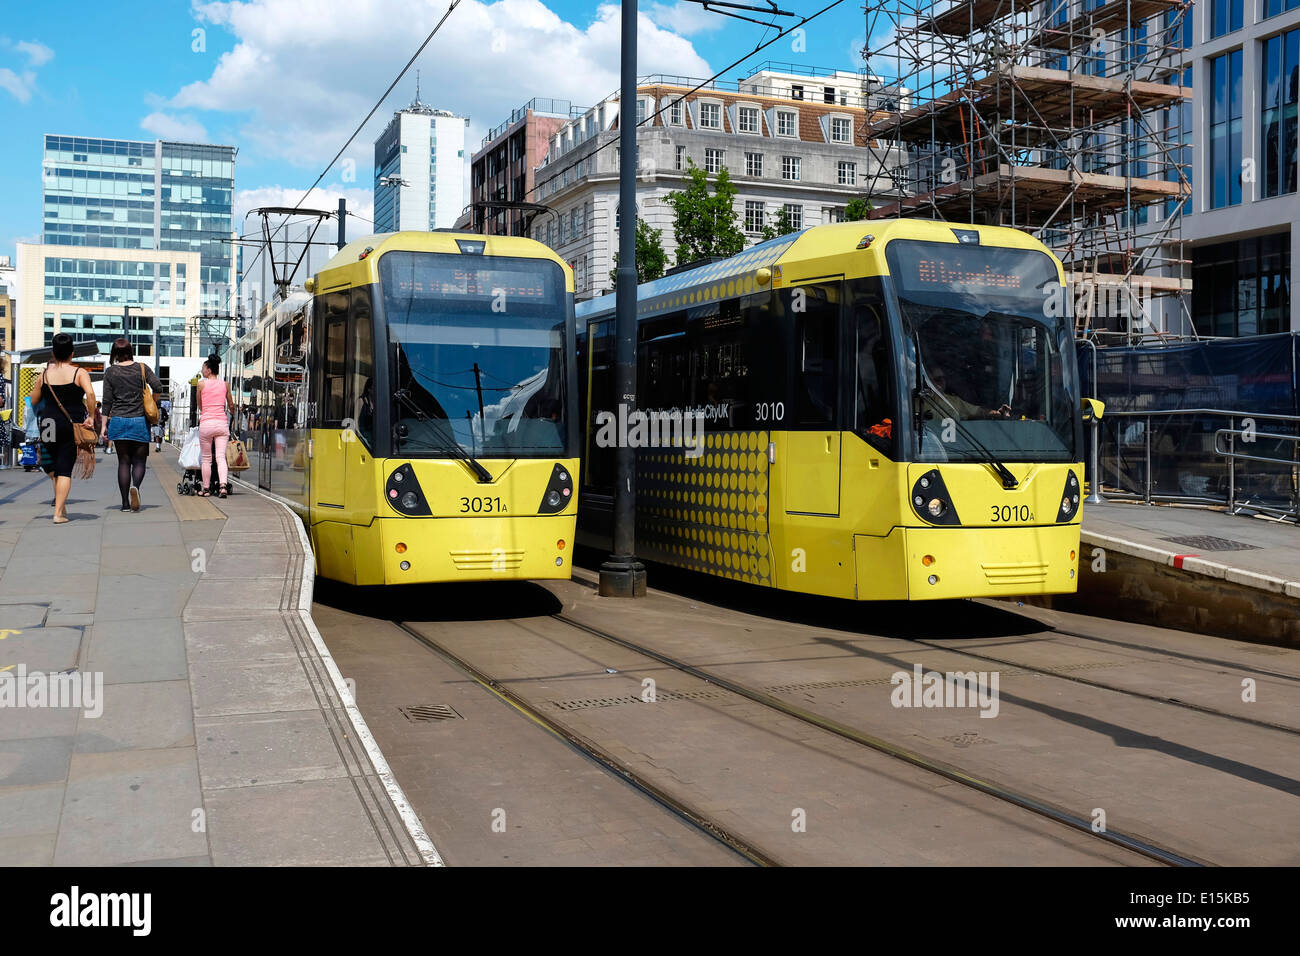 Two yellow Metrolink trams at St Peters Square Station in Manchester city centre UK - Stock Image